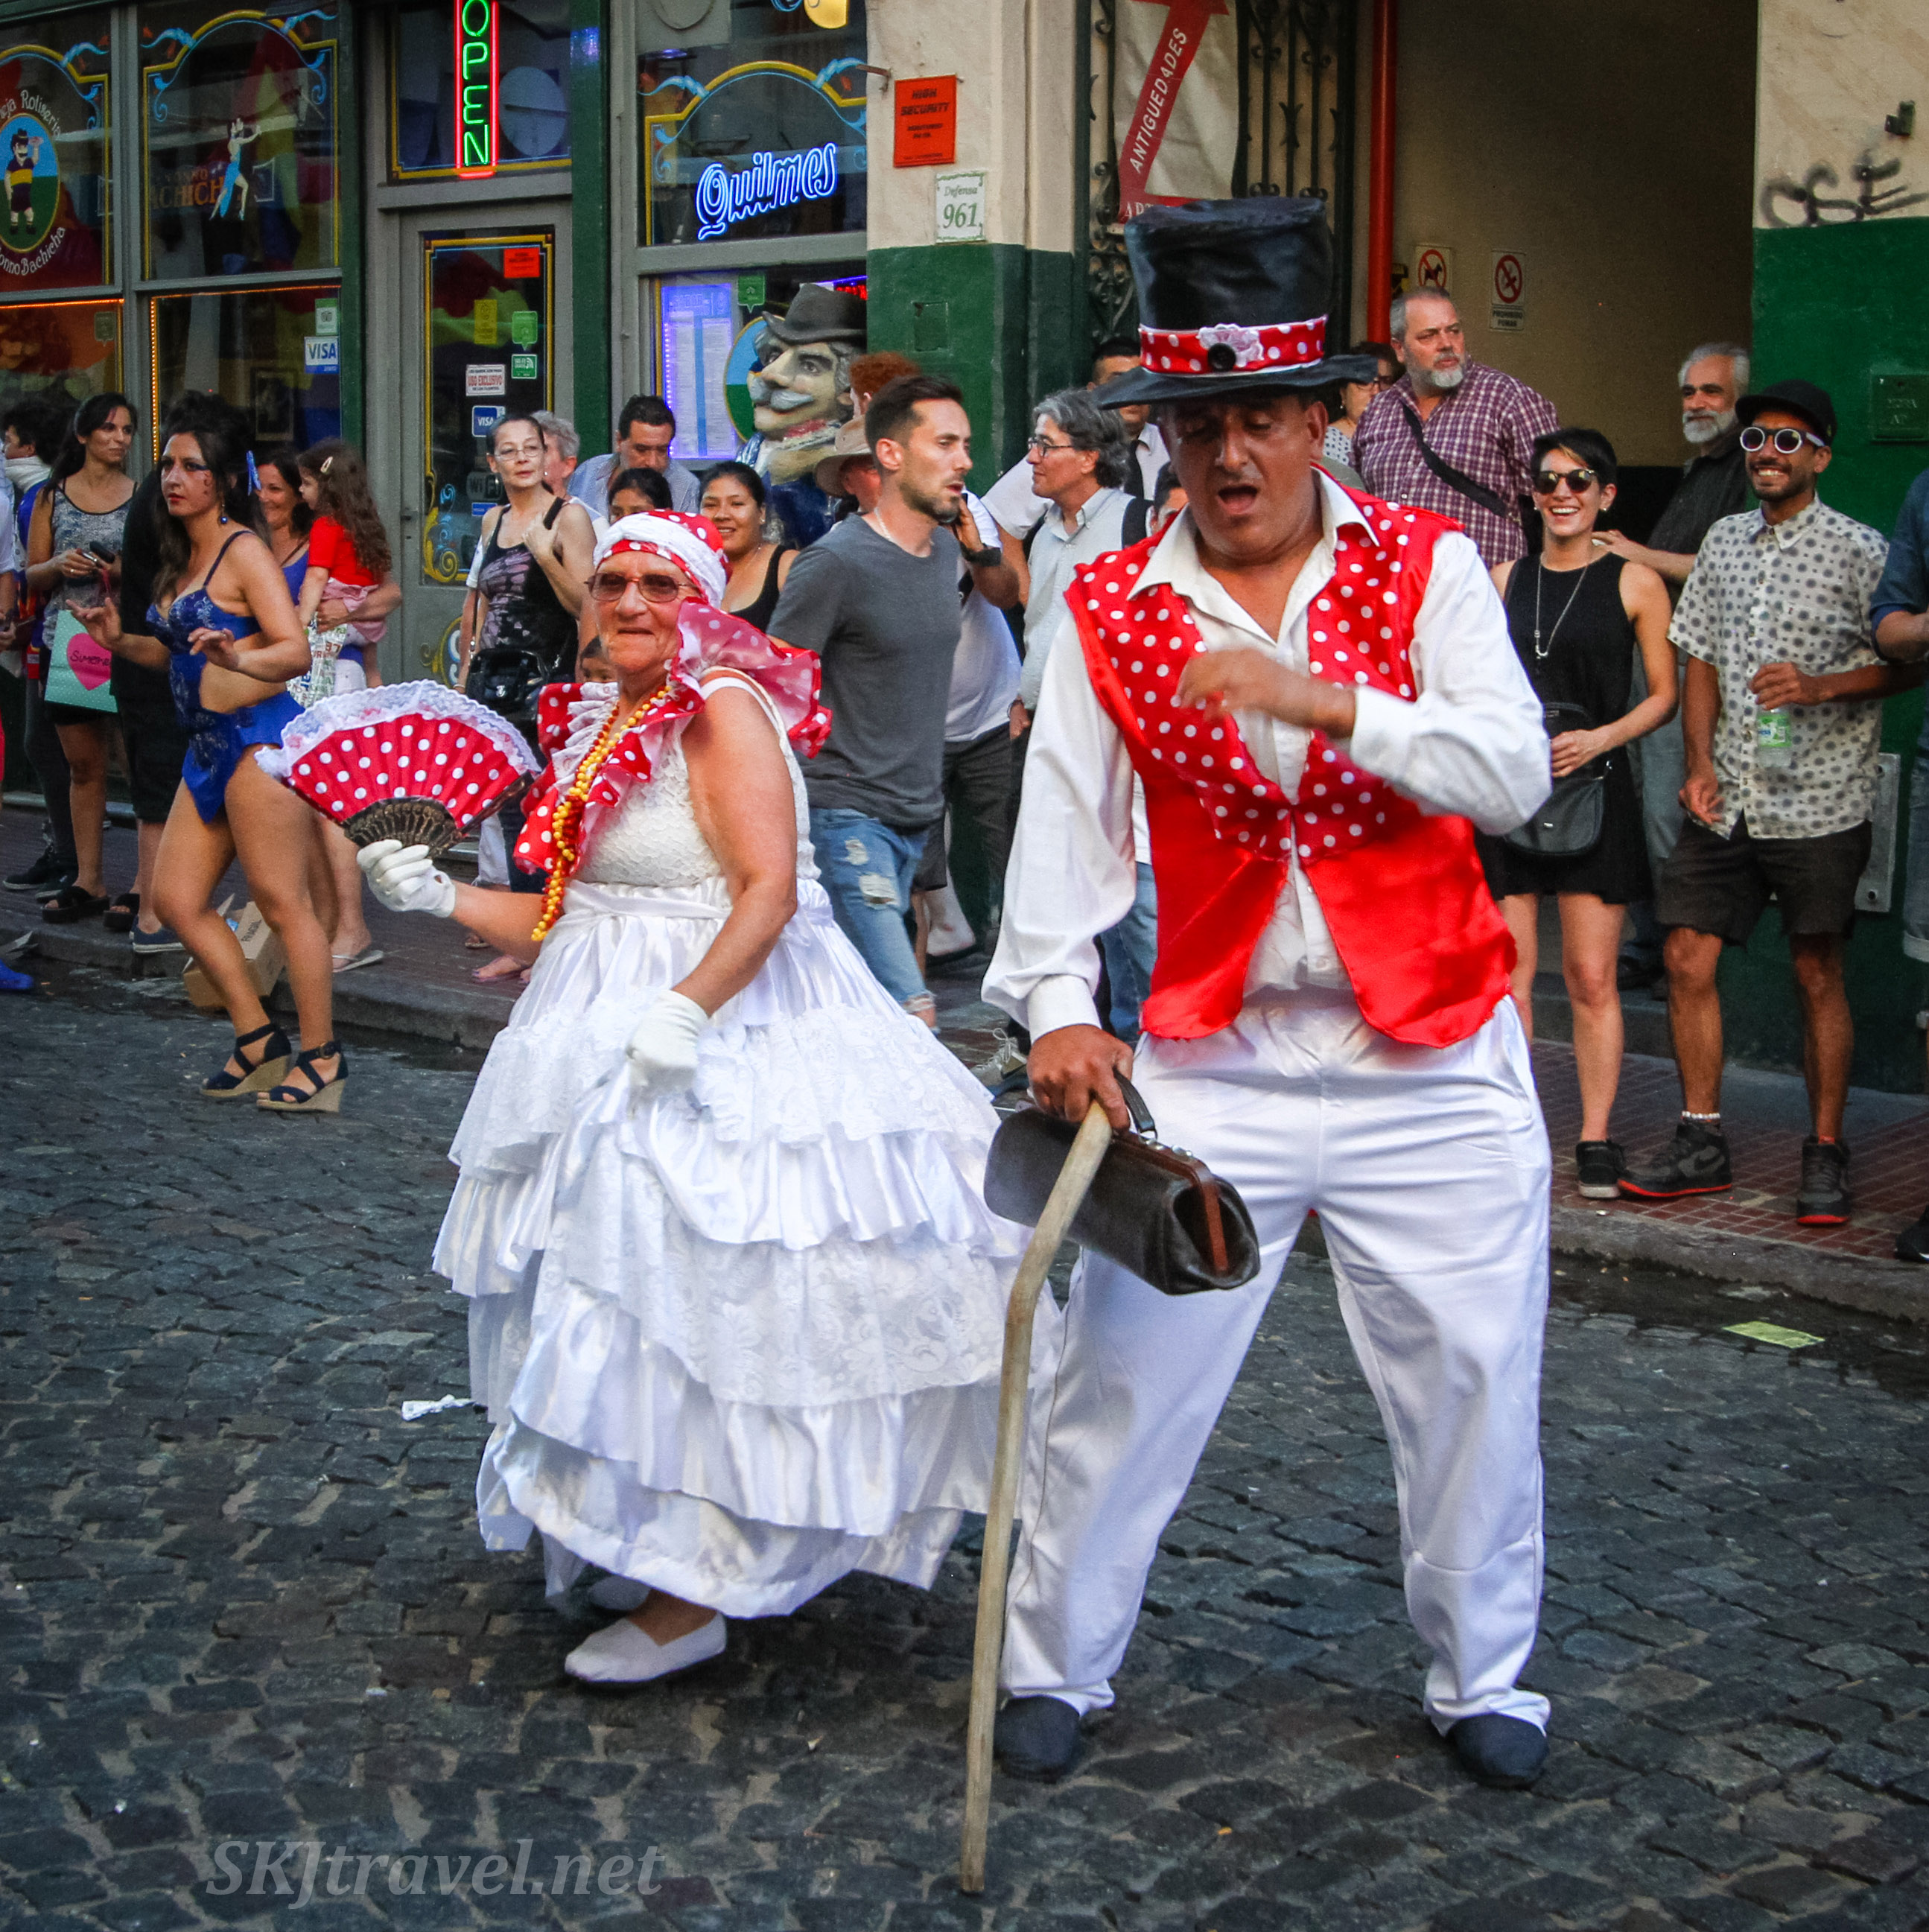 Mama Vieja and Gramillero characters dancing and play acting in the San Telmo Candombe parade, Buenos Aires, Argentina.